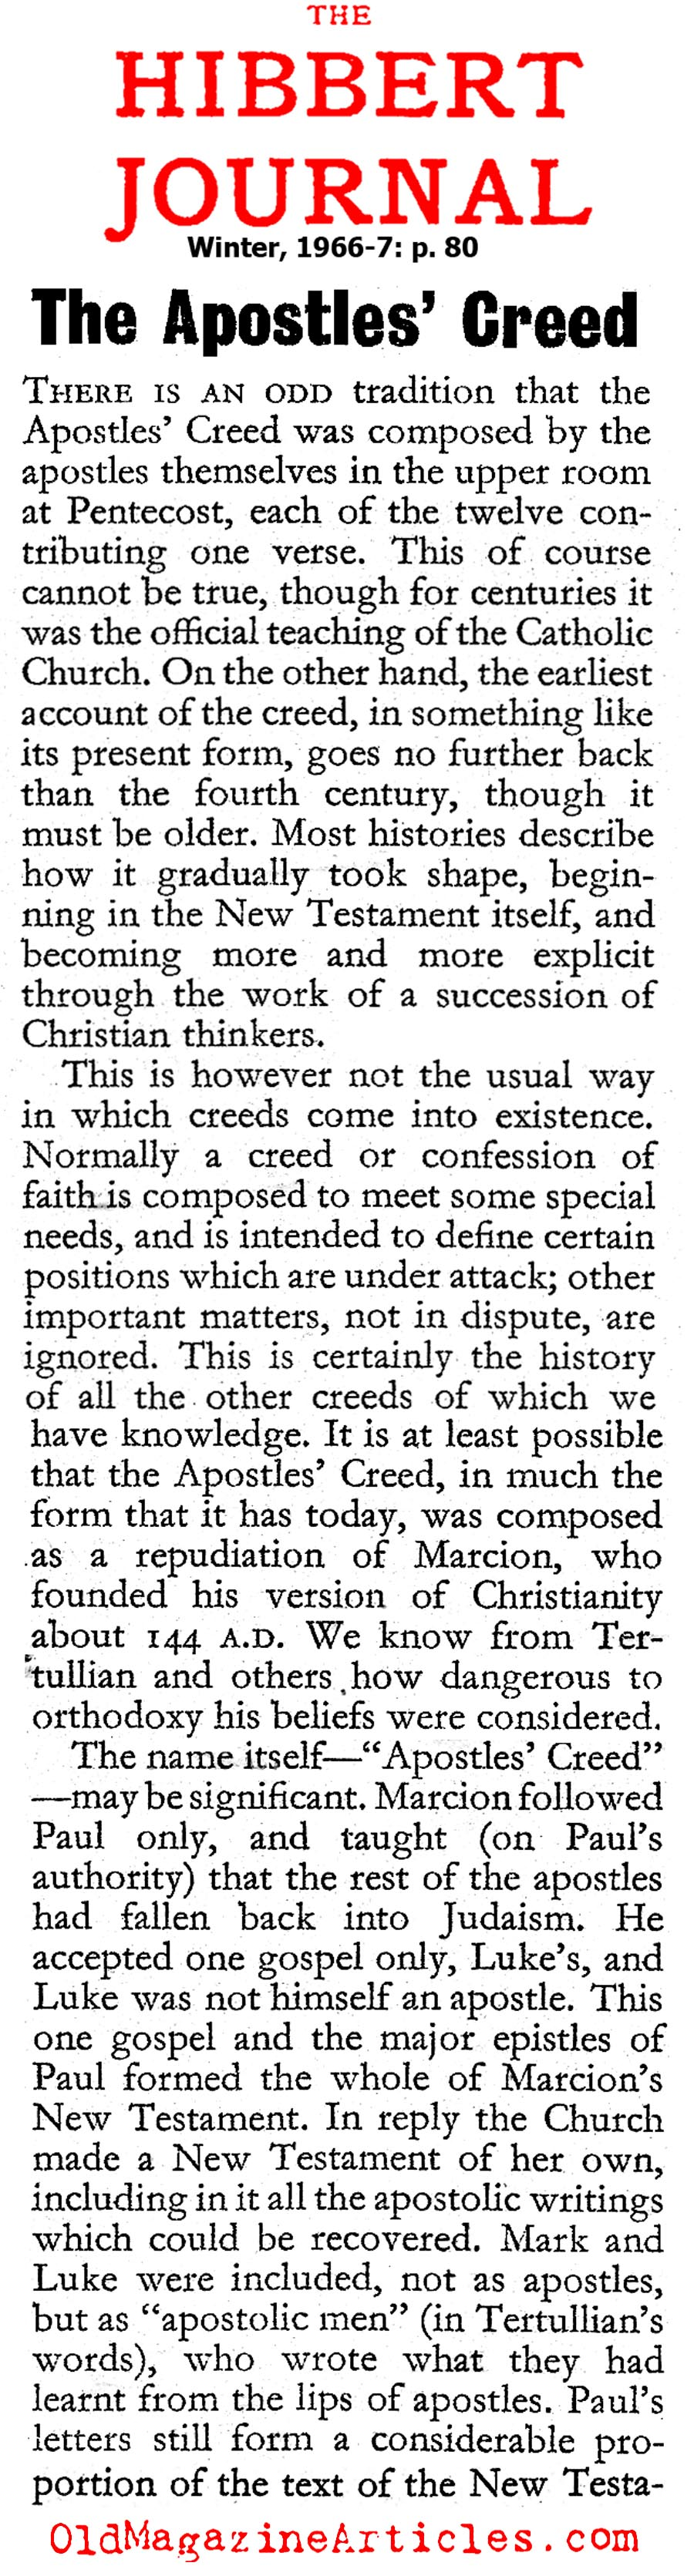 essay on the nicene creed The apostle's creed  topics:  the nicene creed essay  the nicene creed is the creed or profession of faith that was adopted in the city.